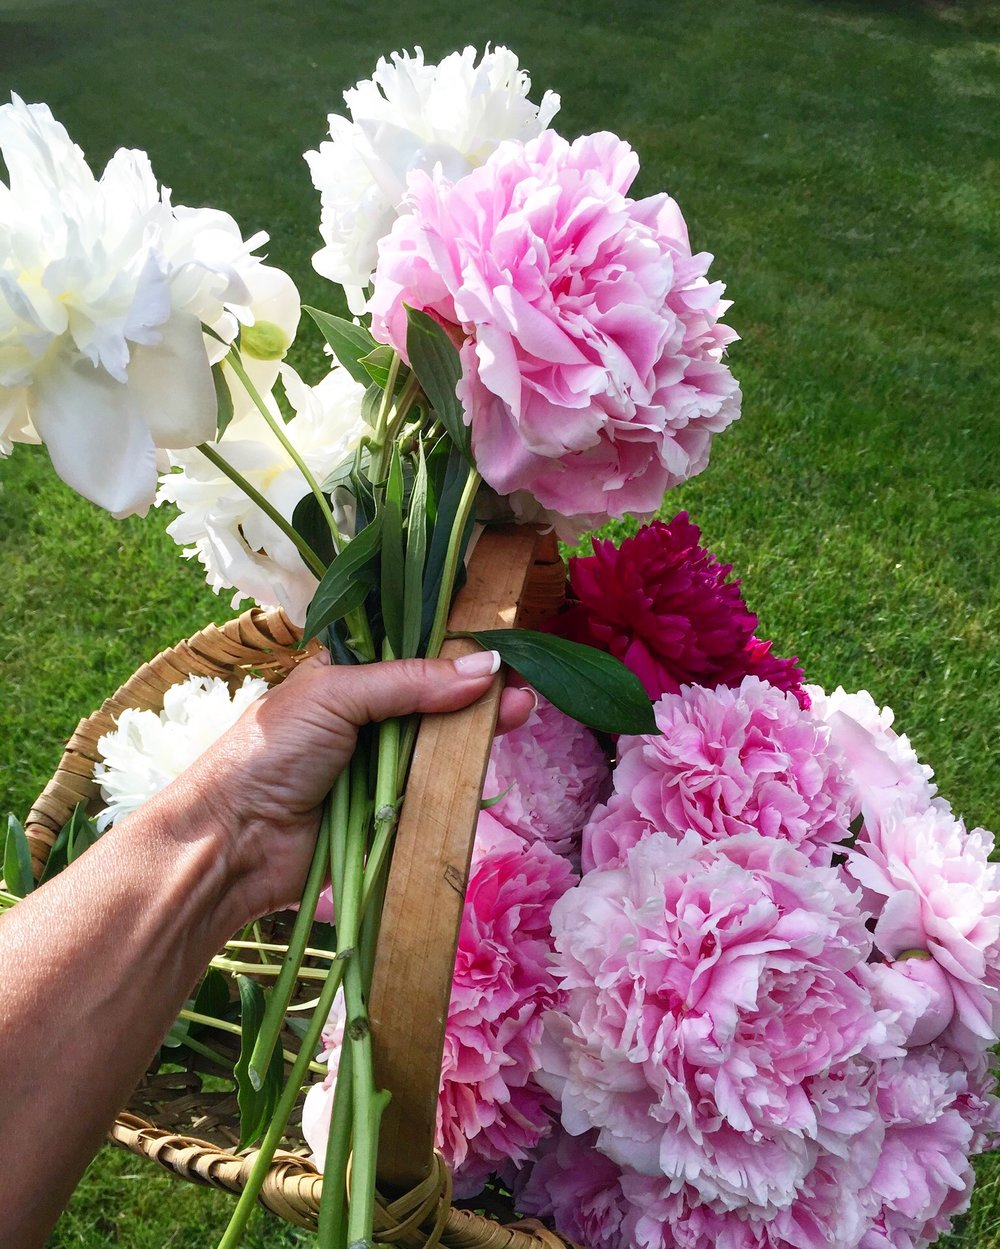 pink and white peonies.jpg